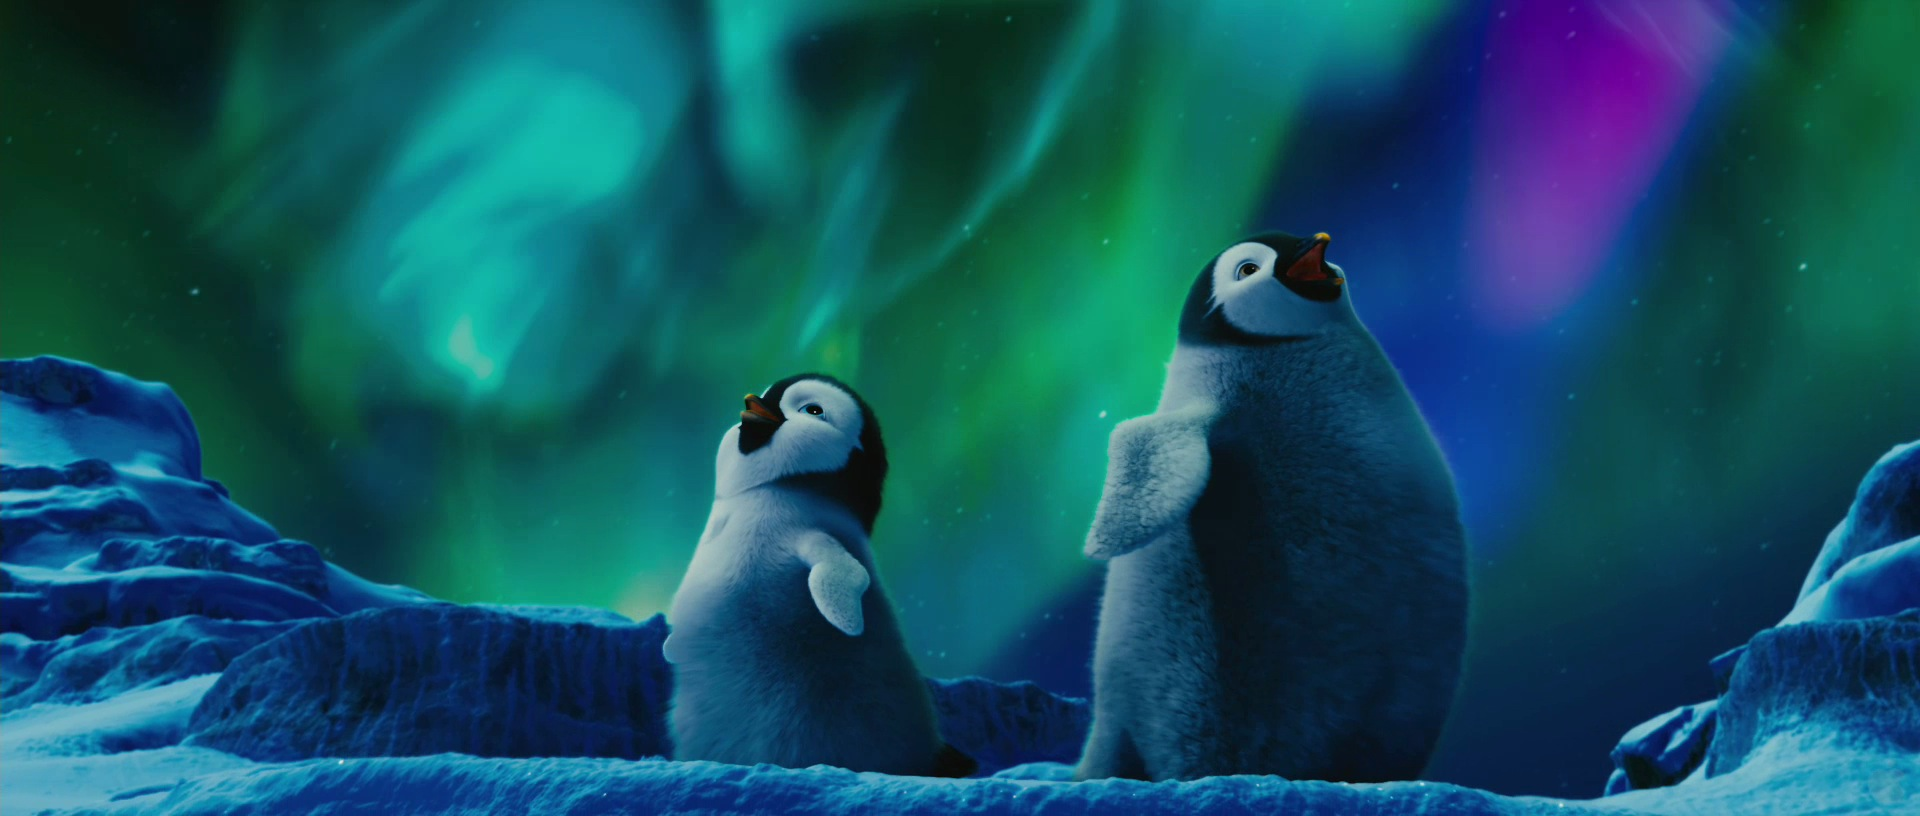 Baby Penguins Under The Aurora Australis In Antarctica From Happy Feet Two Movie Wallpaper